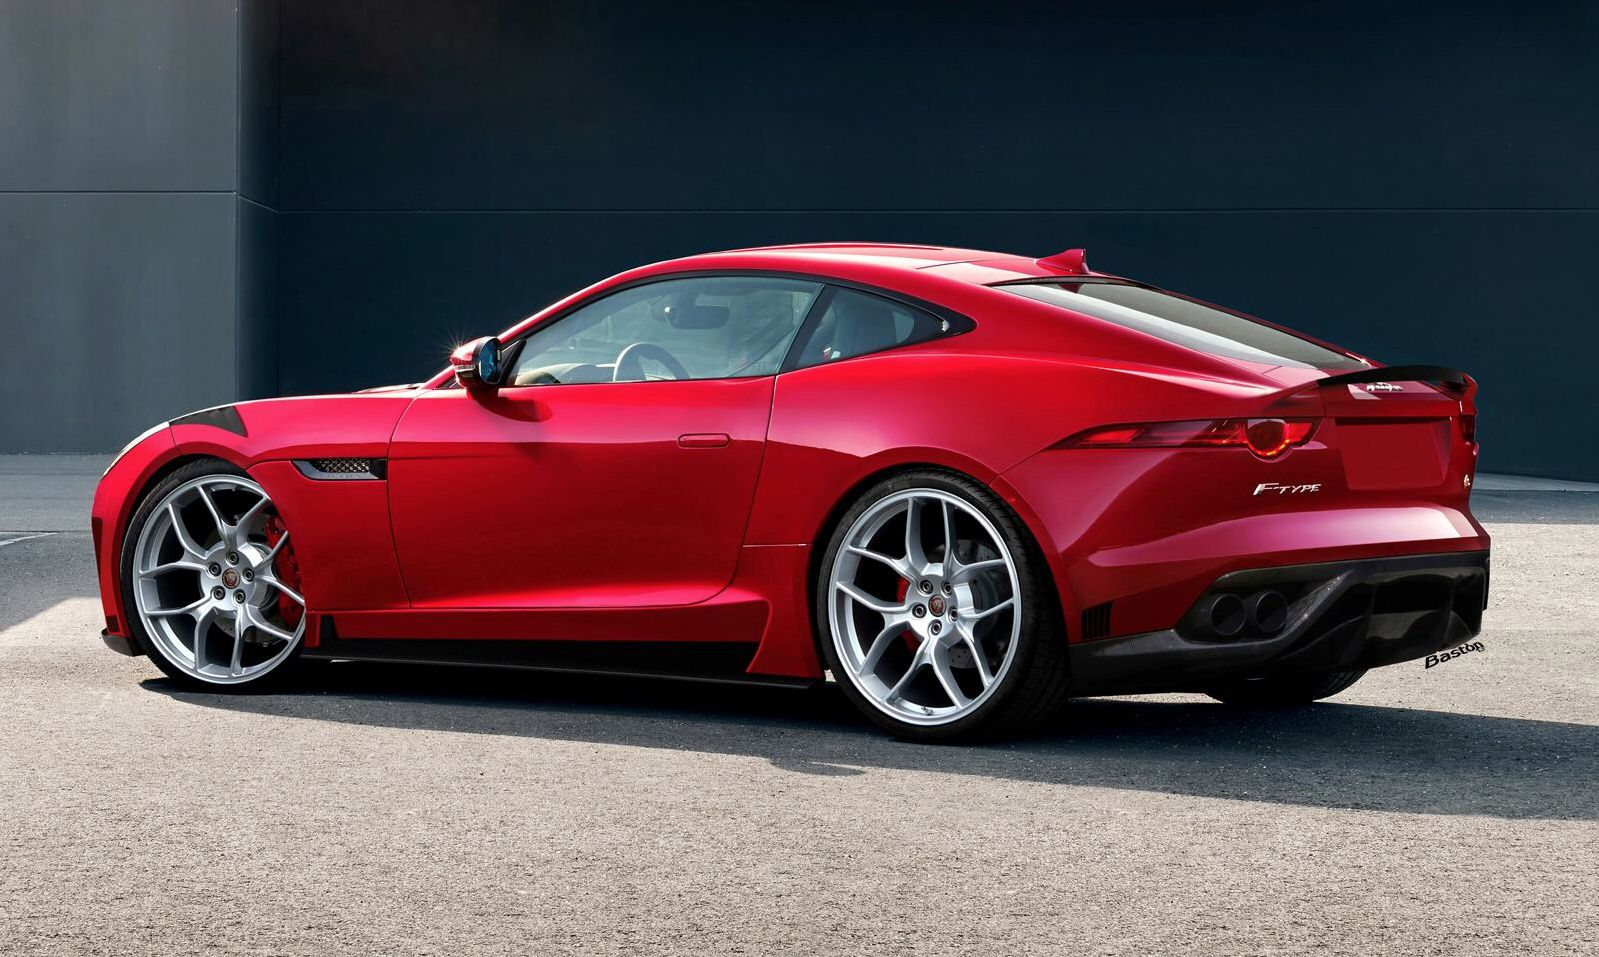 Red 2016 Jaguar F Type R With Soaring Performance The F Type R Coupe Offers Outstanding Levels Of Dynamic Capability And Control Its 5 0 Liter Sup Auto Carros